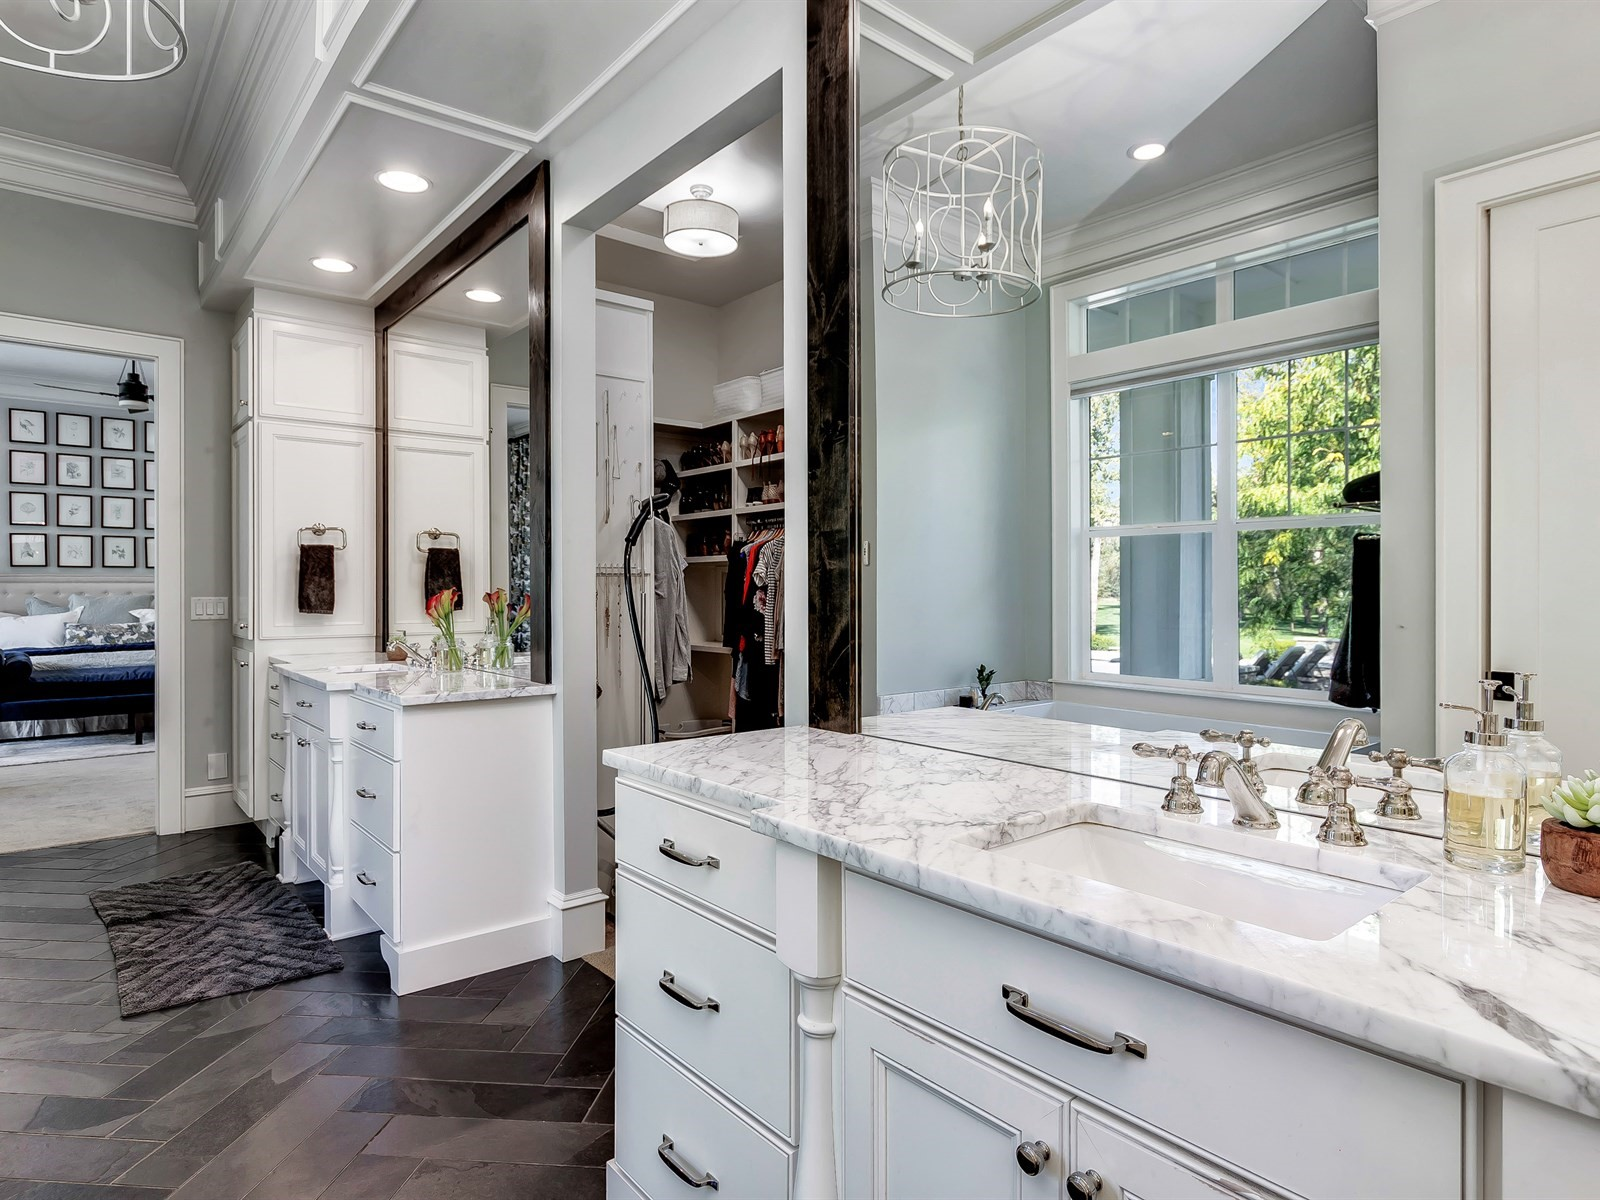 043_Master Bathroom .jpg